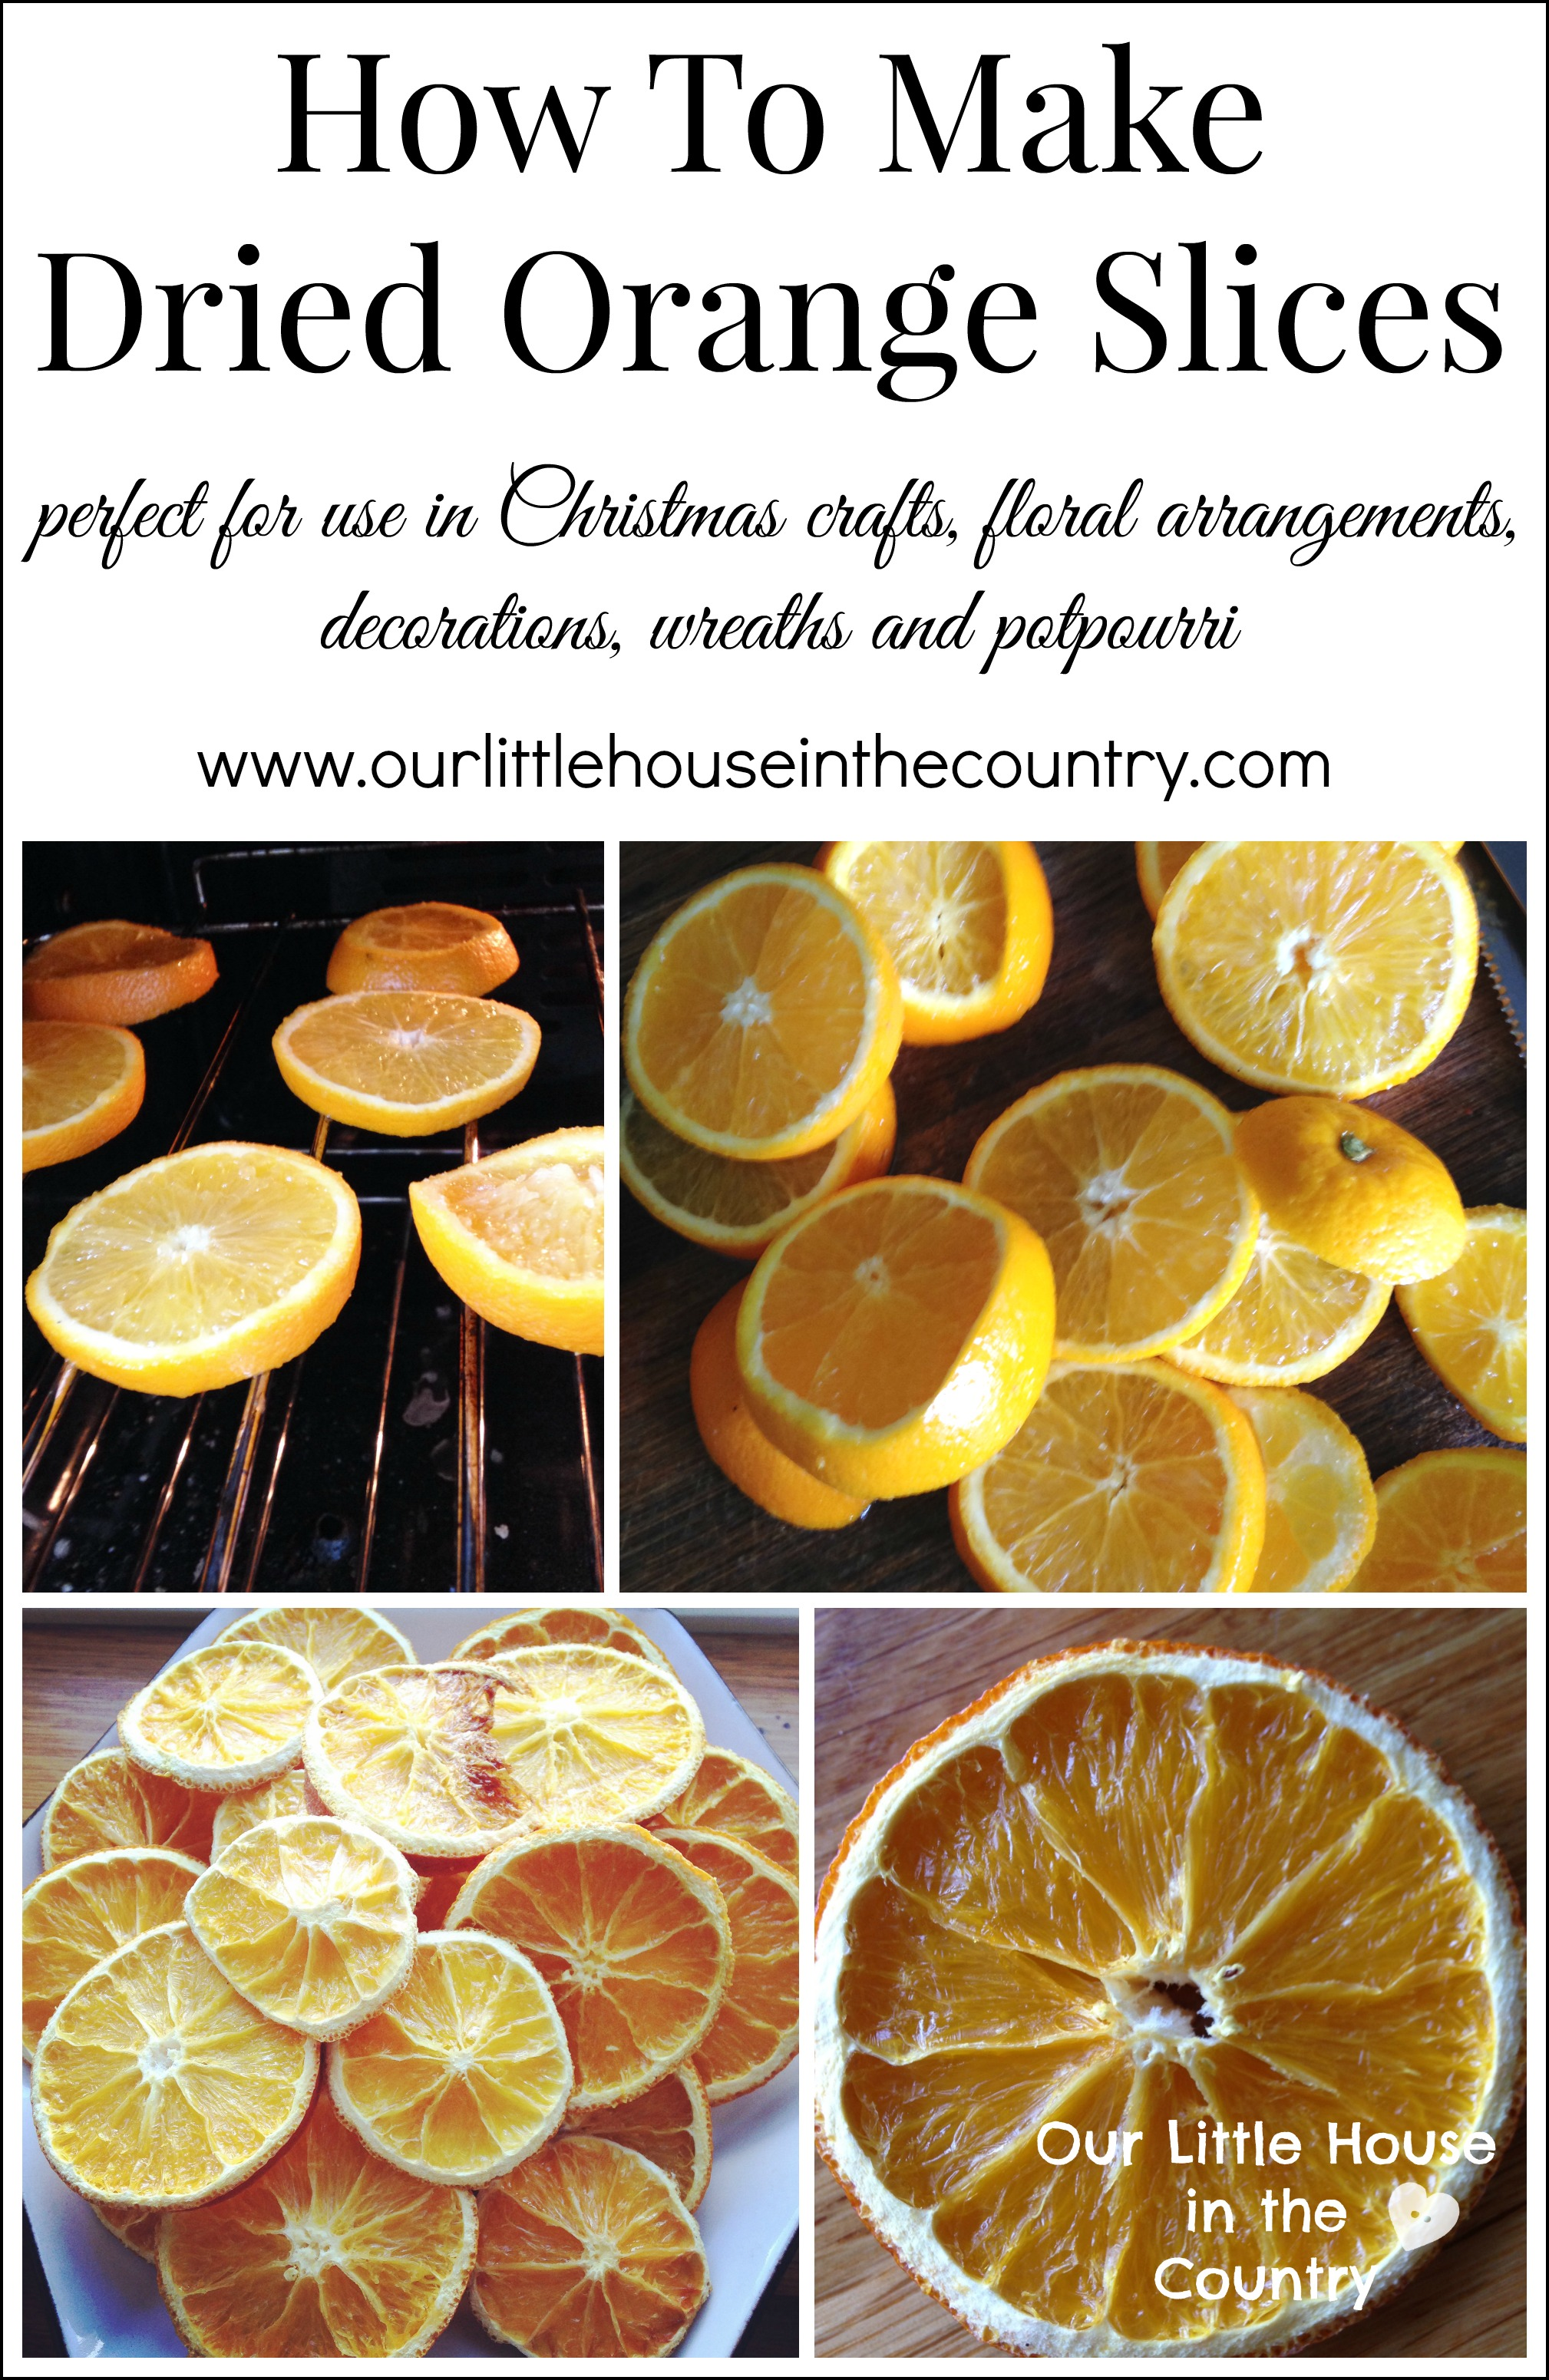 Country christmas decorations 2014 - How To Make Dried Orange Slices Perfect For Use In Christmas Crafts Wreaths